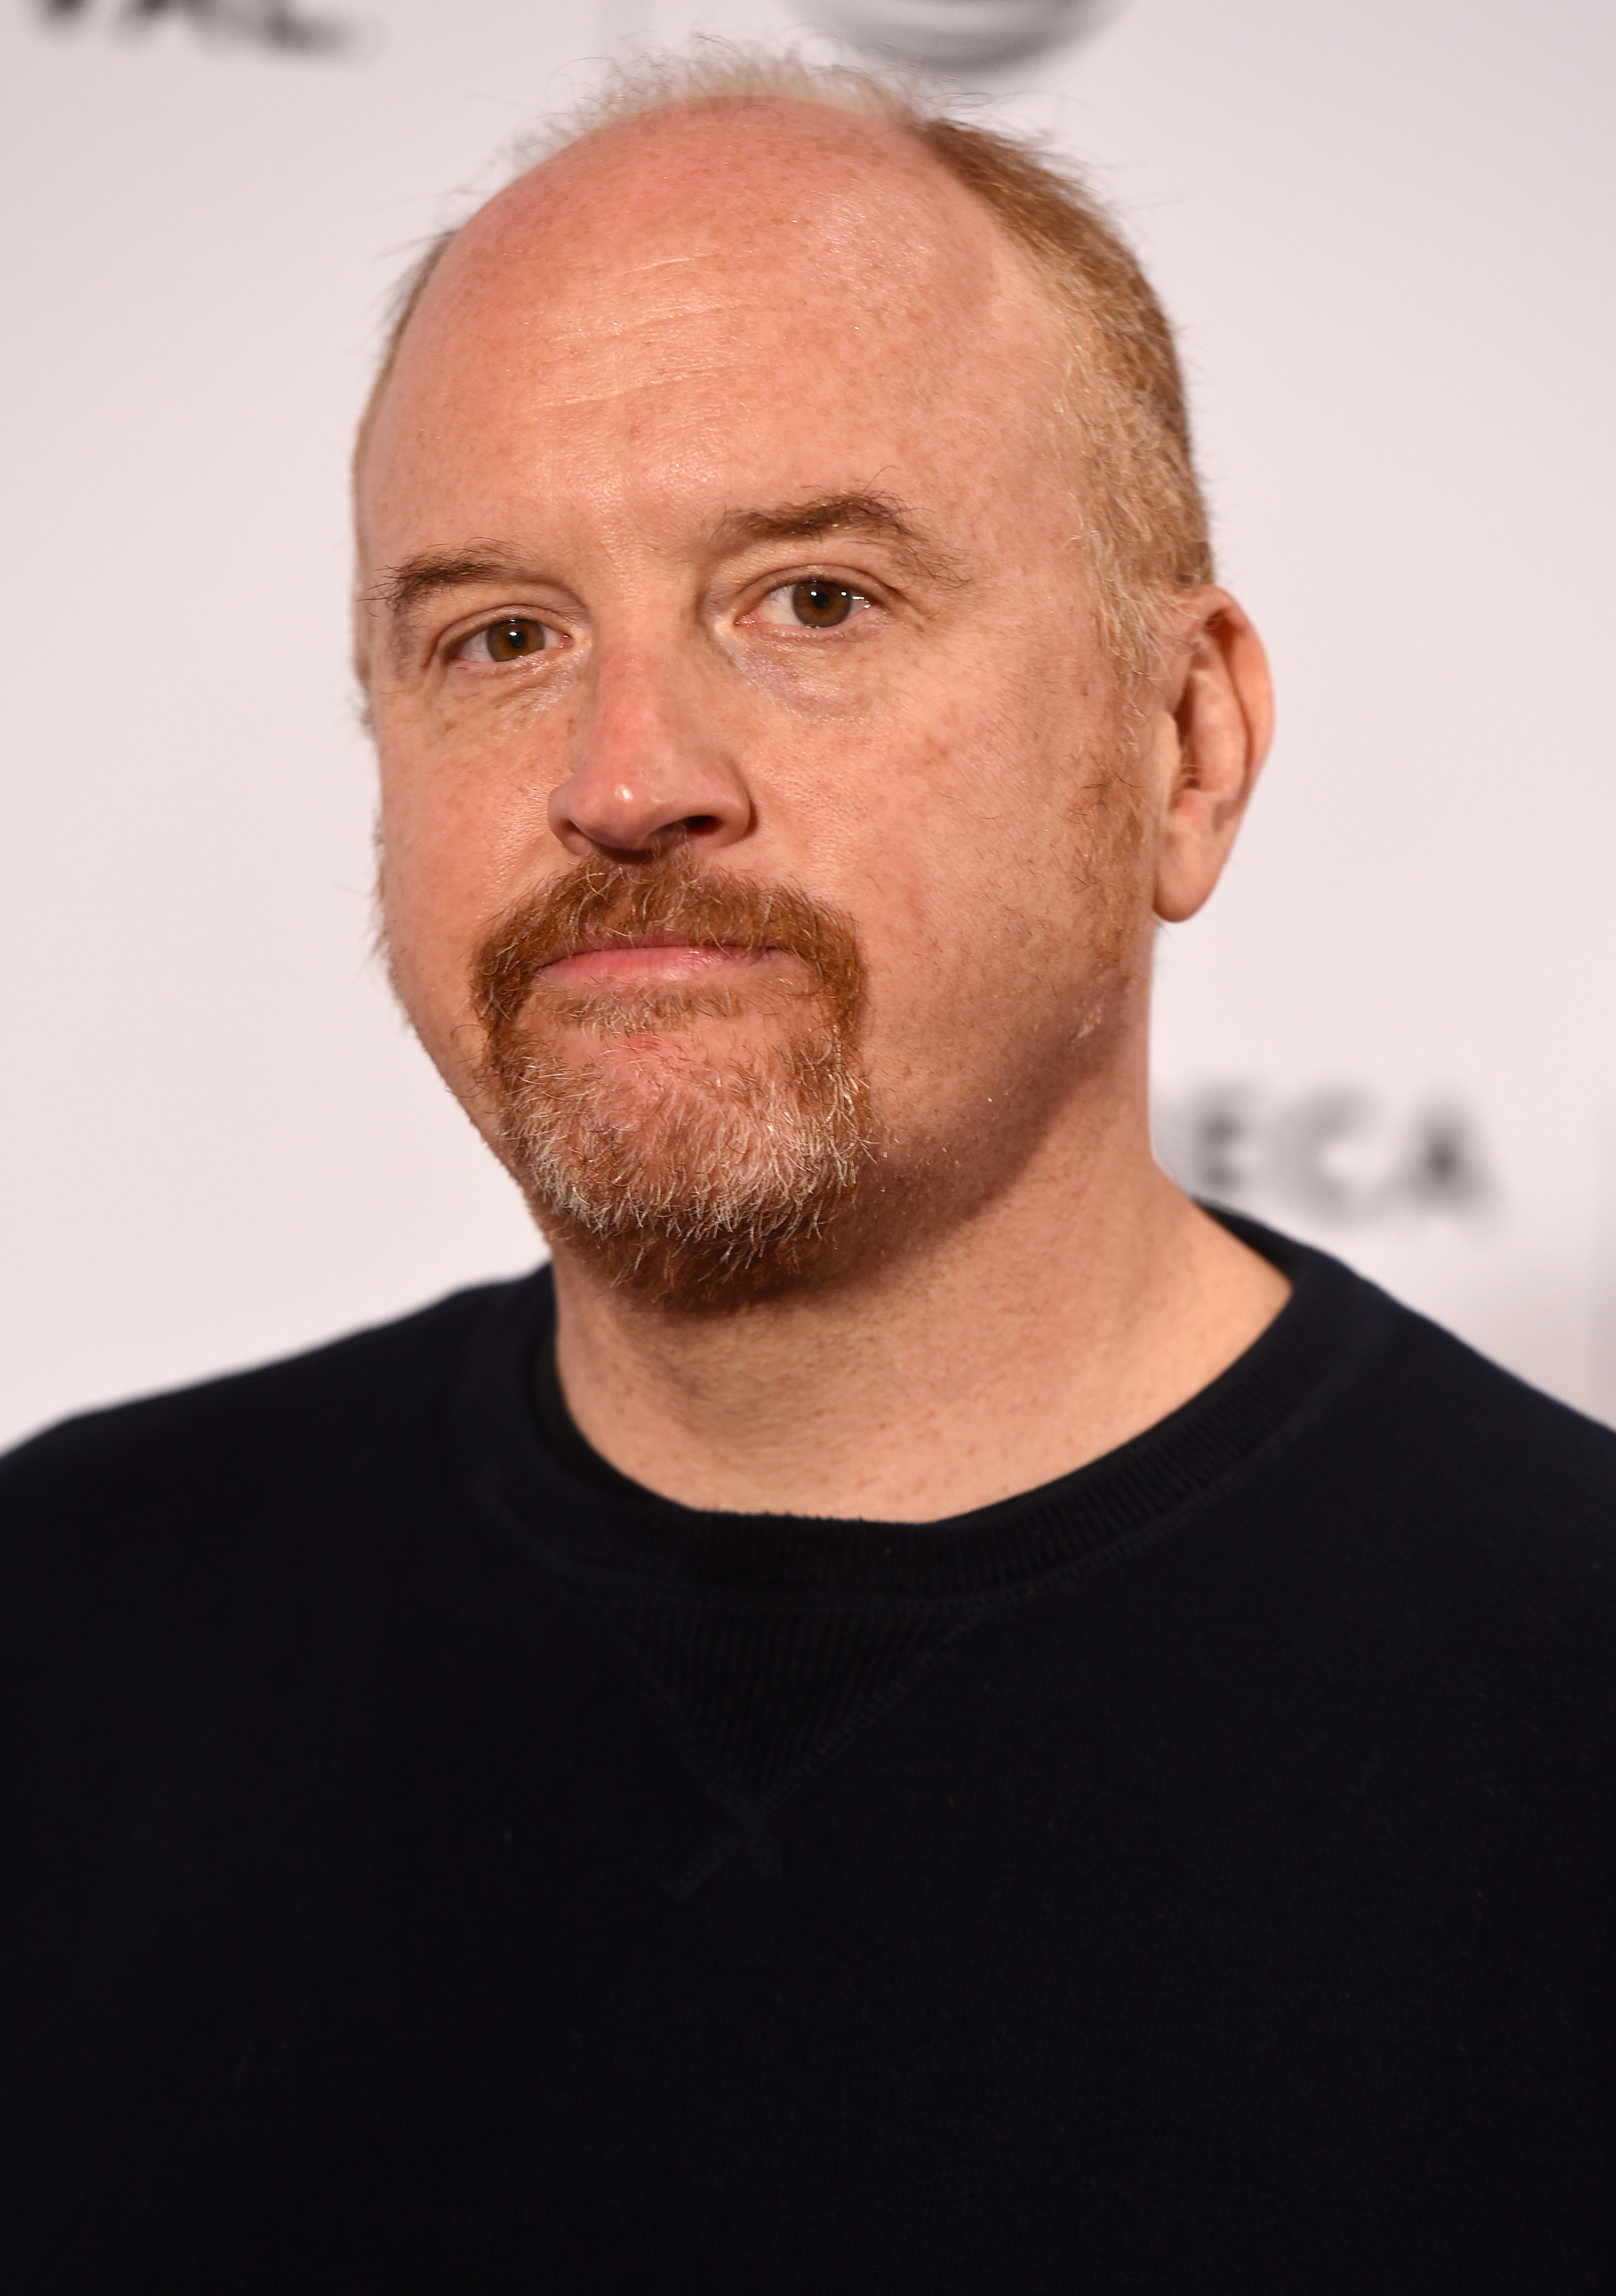 Louis C.K. attends the  Check It  Premiere during the 2016 Tribeca Film Festival at Chelsea Bow Tie Cinemas on April 16, 2016 in New York City.